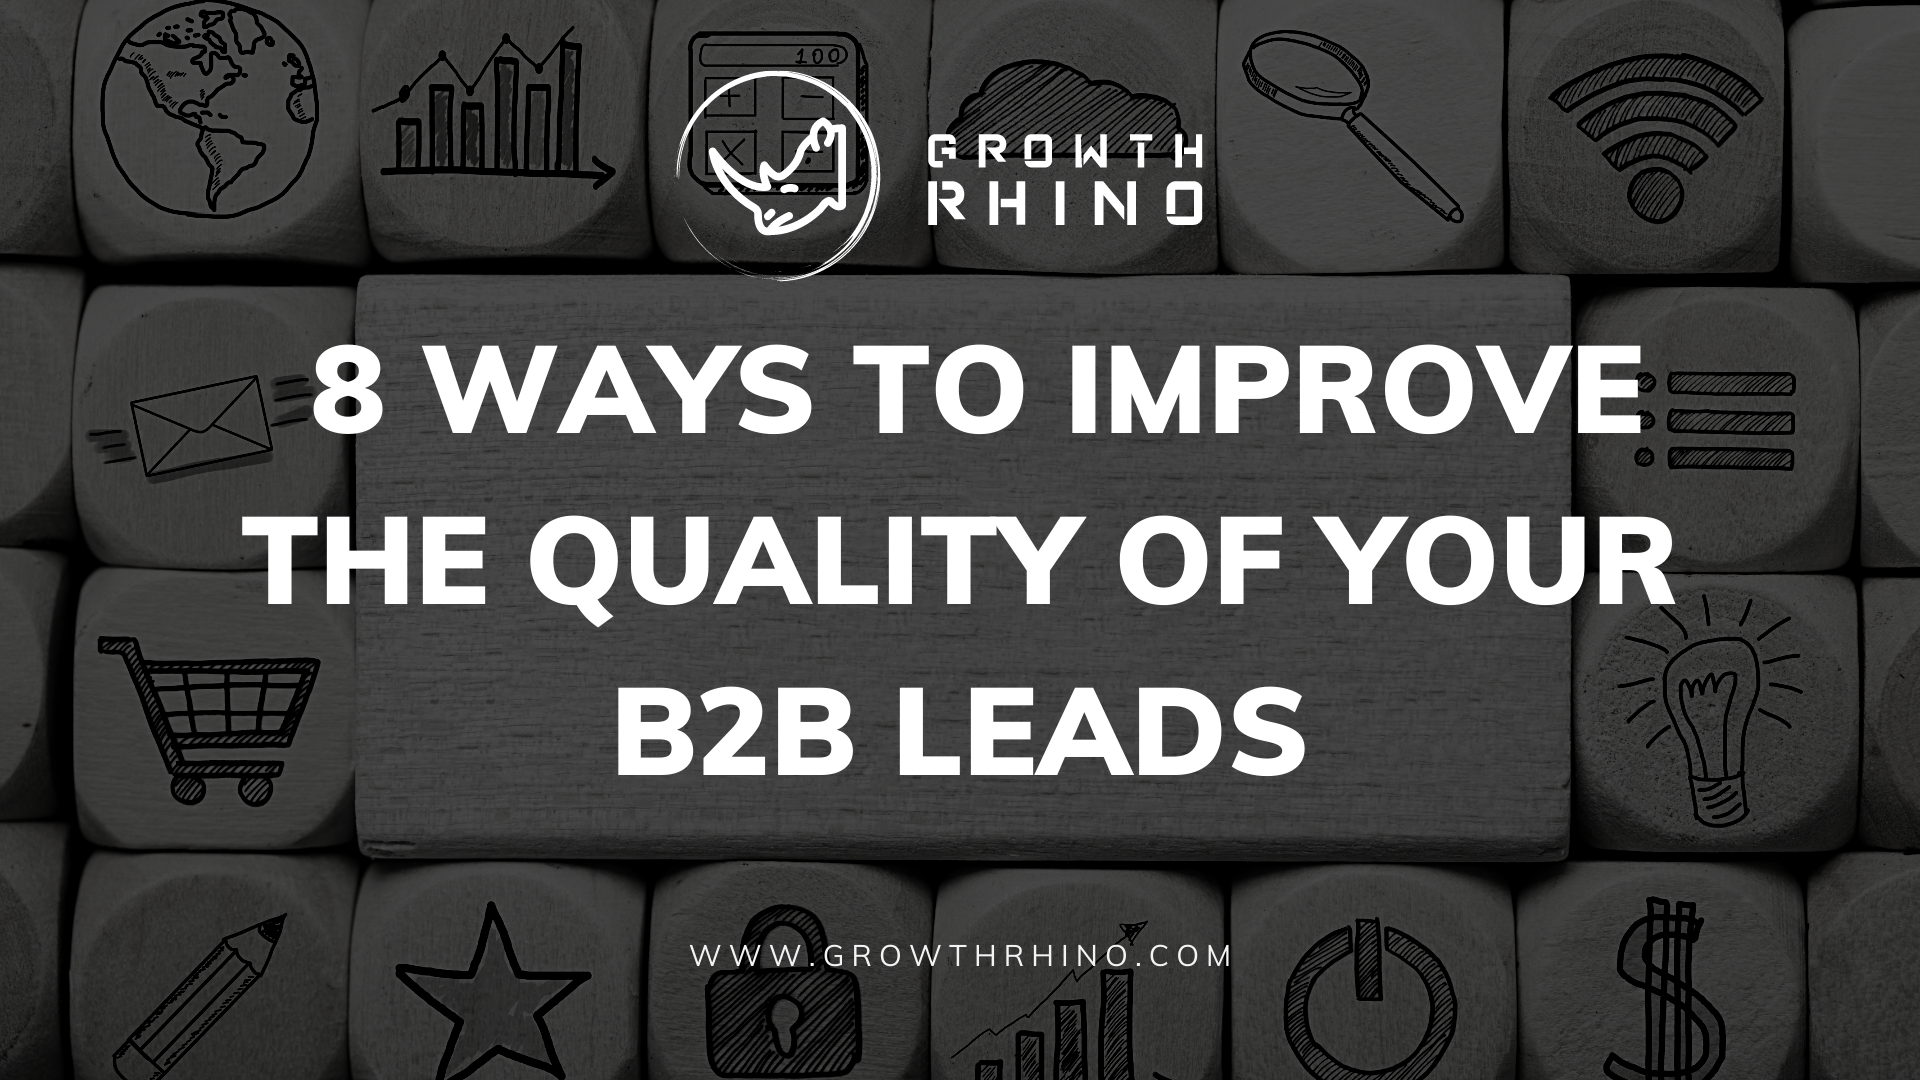 8 Ways to Improve the Quality of Your B2B Leads